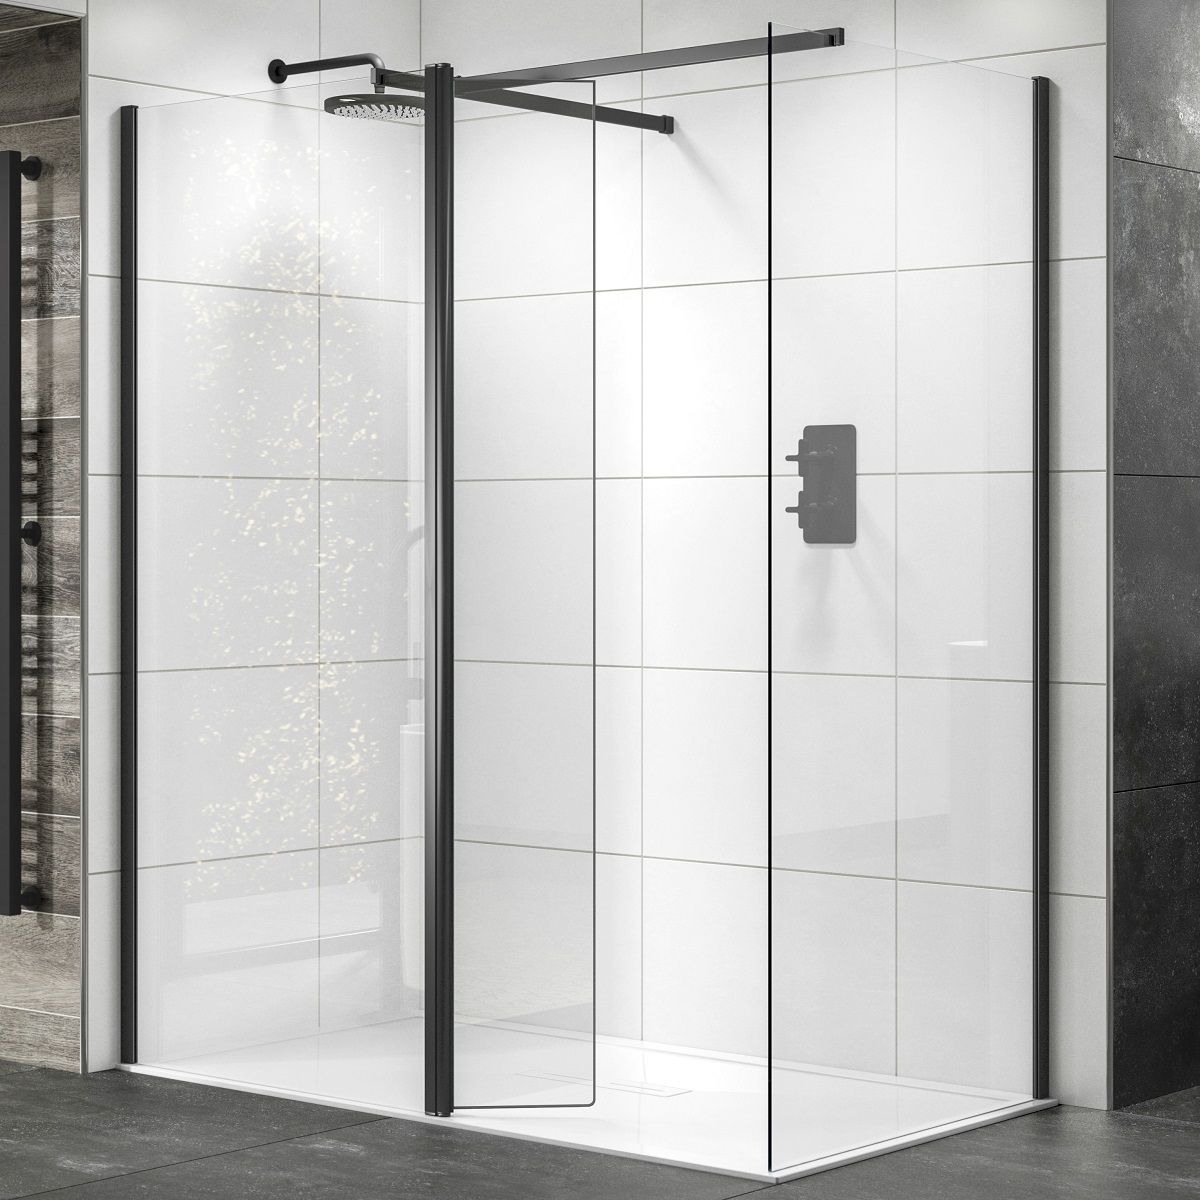 SOWBK14+SOWBK01+SOWBK40 Sommer Wet room Glass Panel - Black Black_2